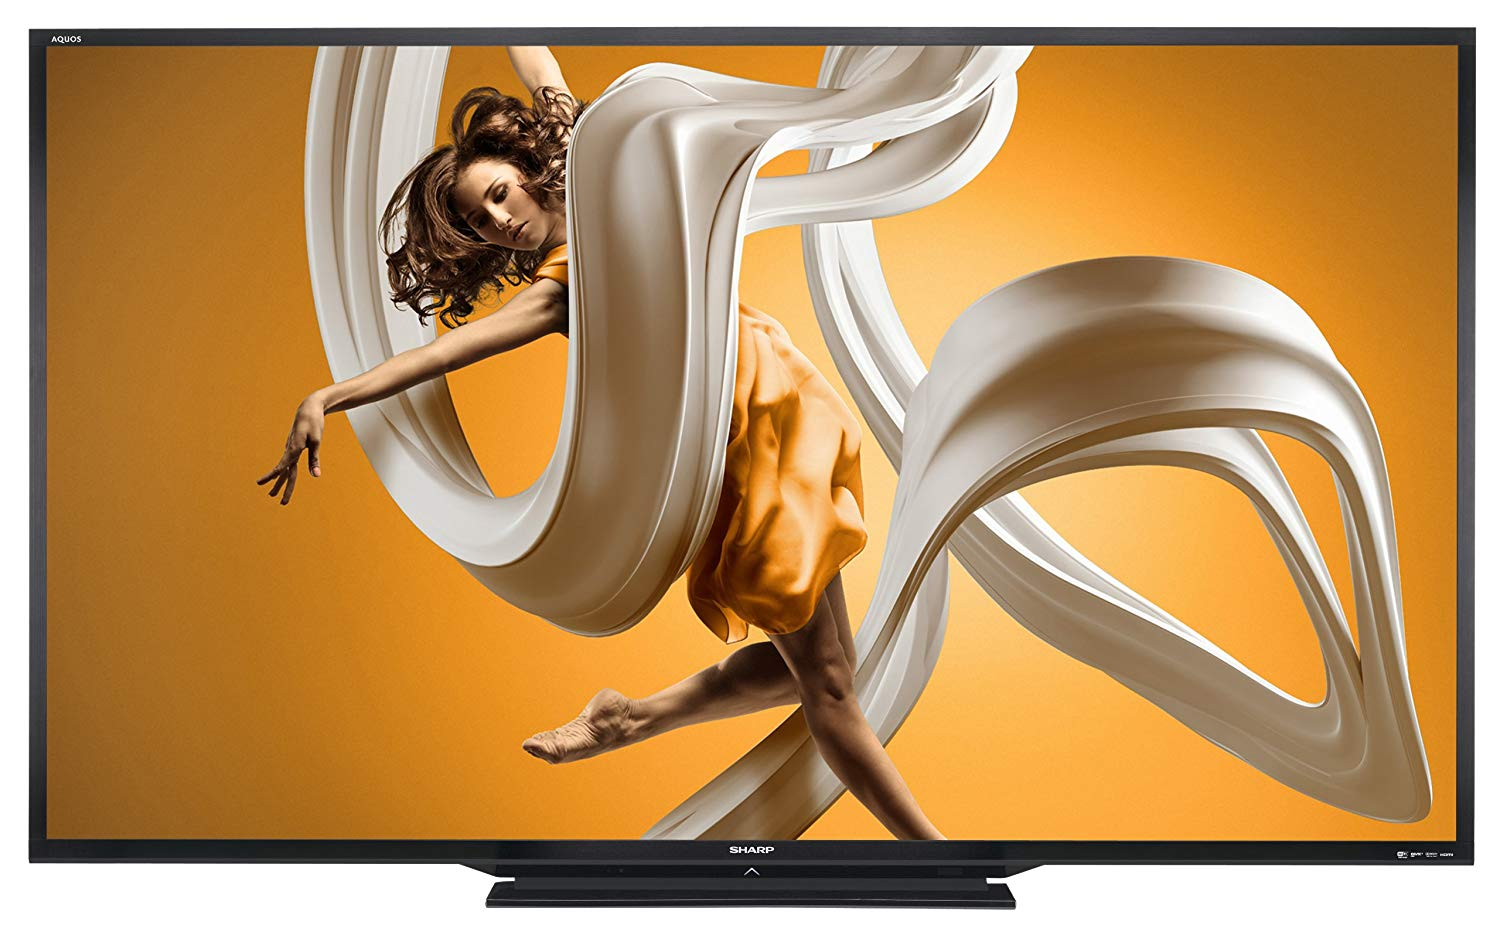 Sharp Smart LED TV (2014 Model)